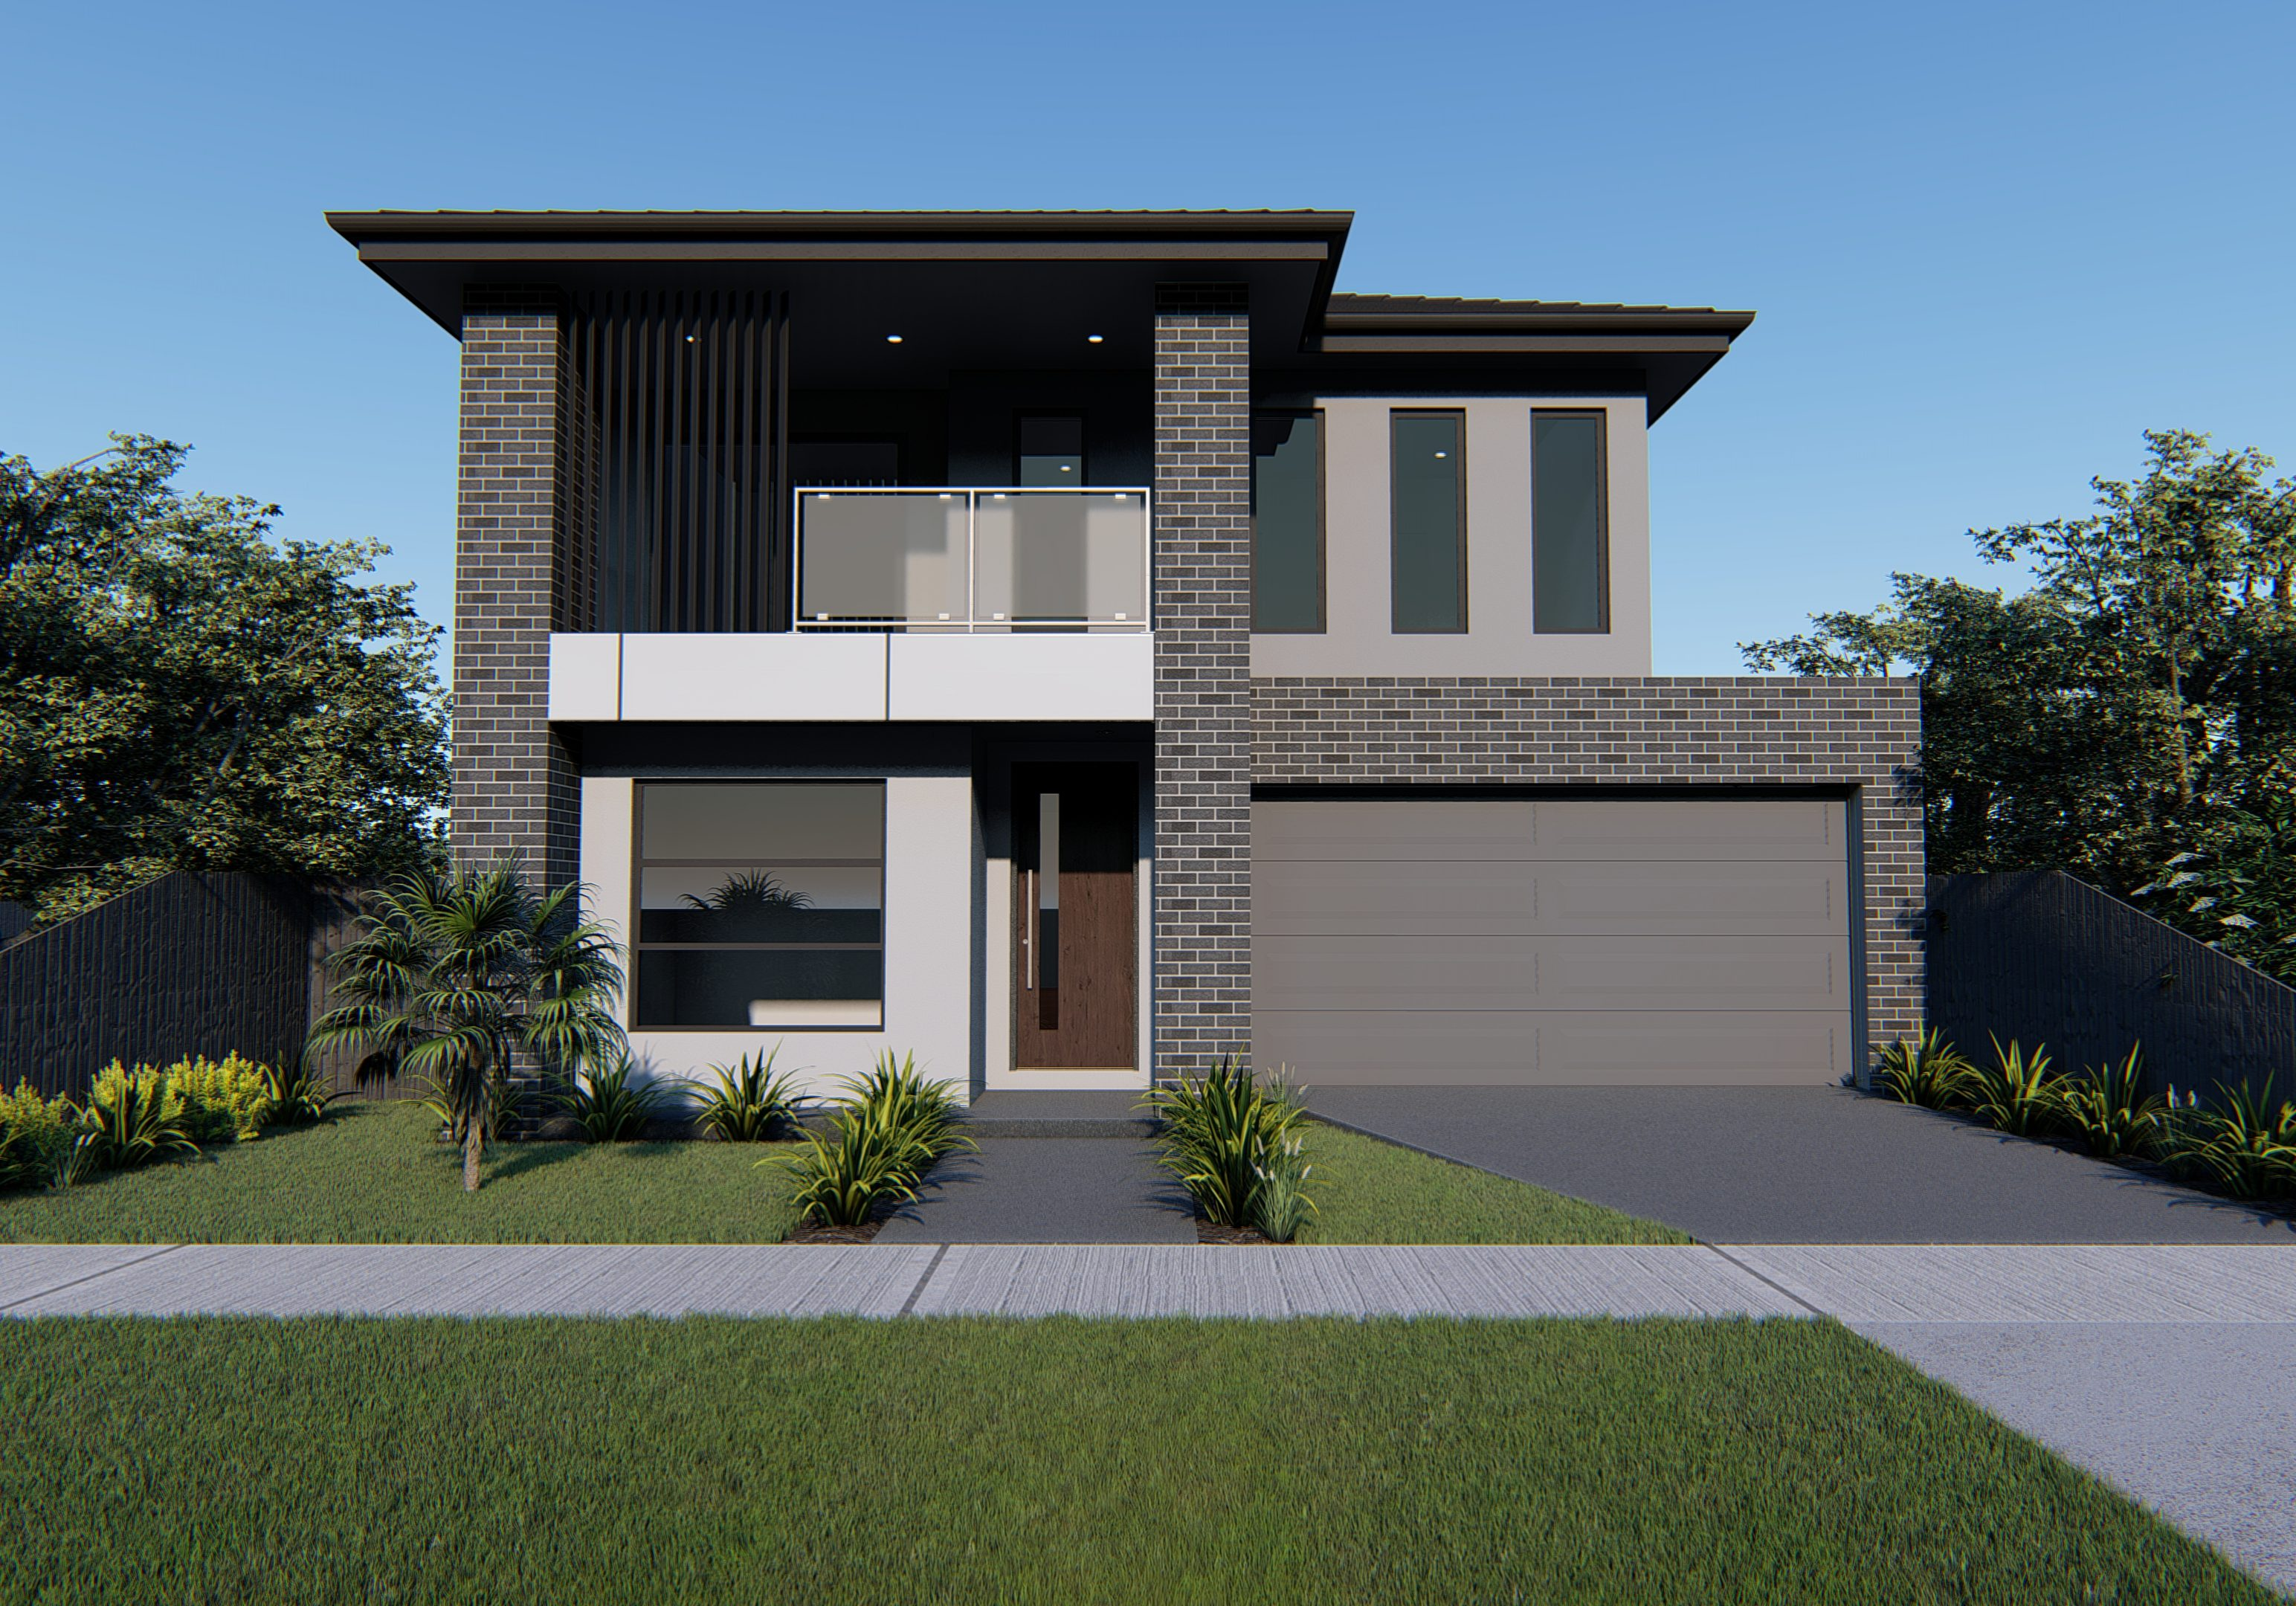 Hawkeye Projects New Homes Melbourne 28 Square home Euora Julez with Matrix Brick